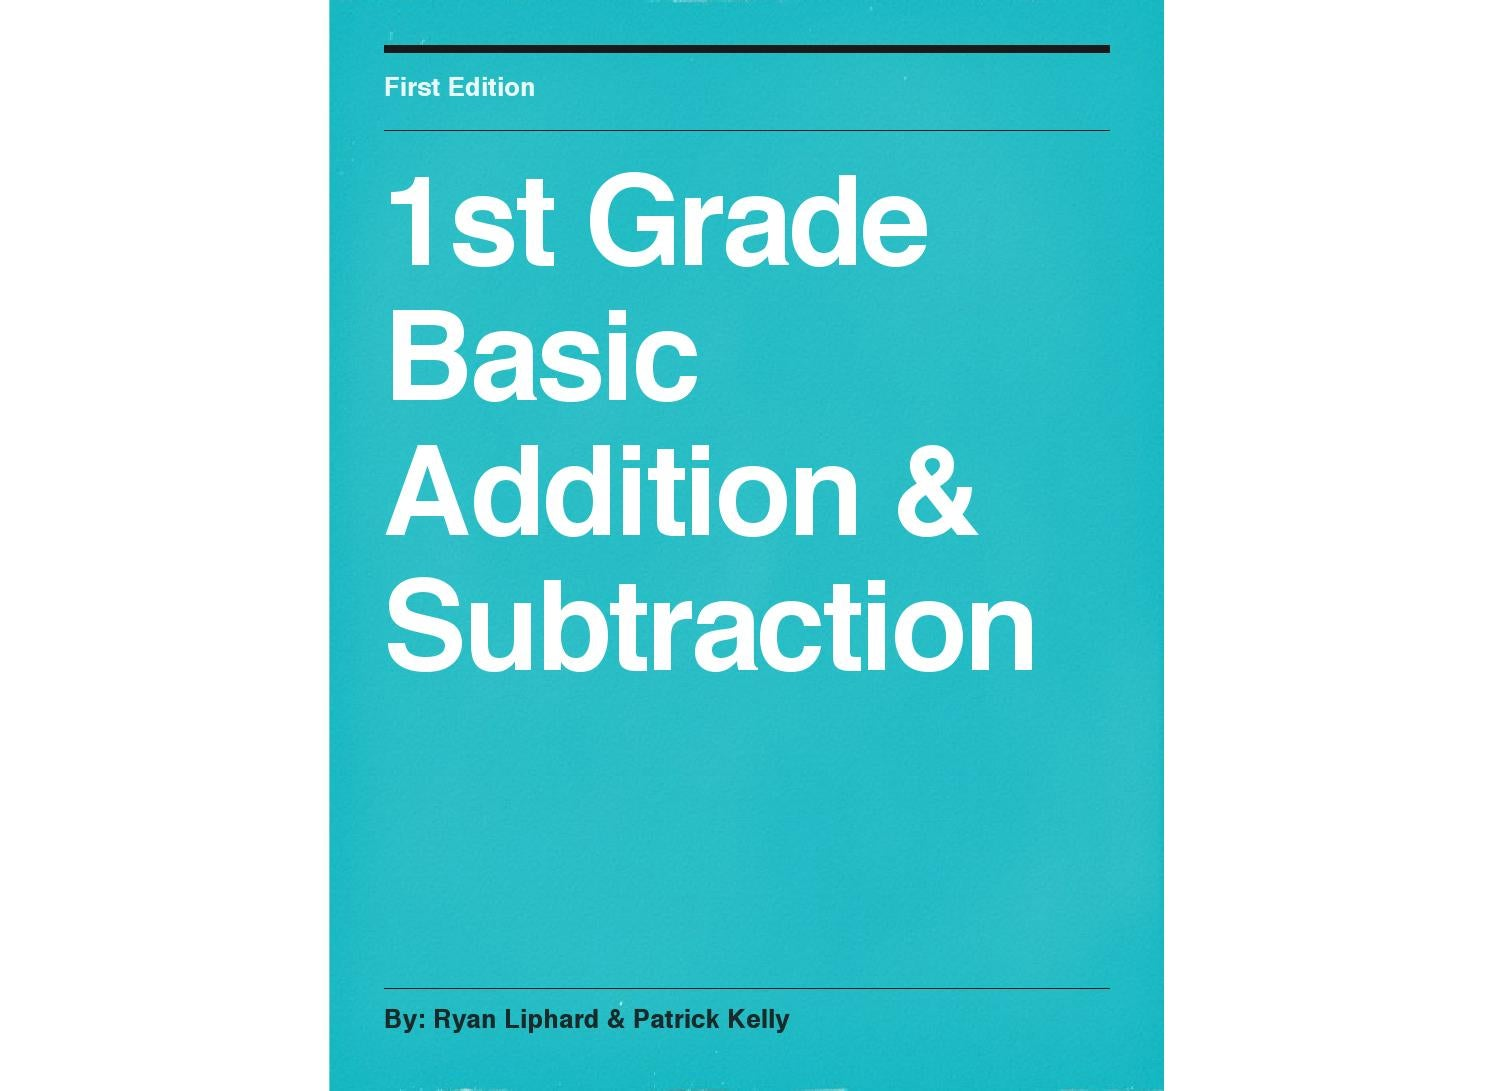 1st Grade Basic Addition & Subtraction by Ryan Liphard - issuu